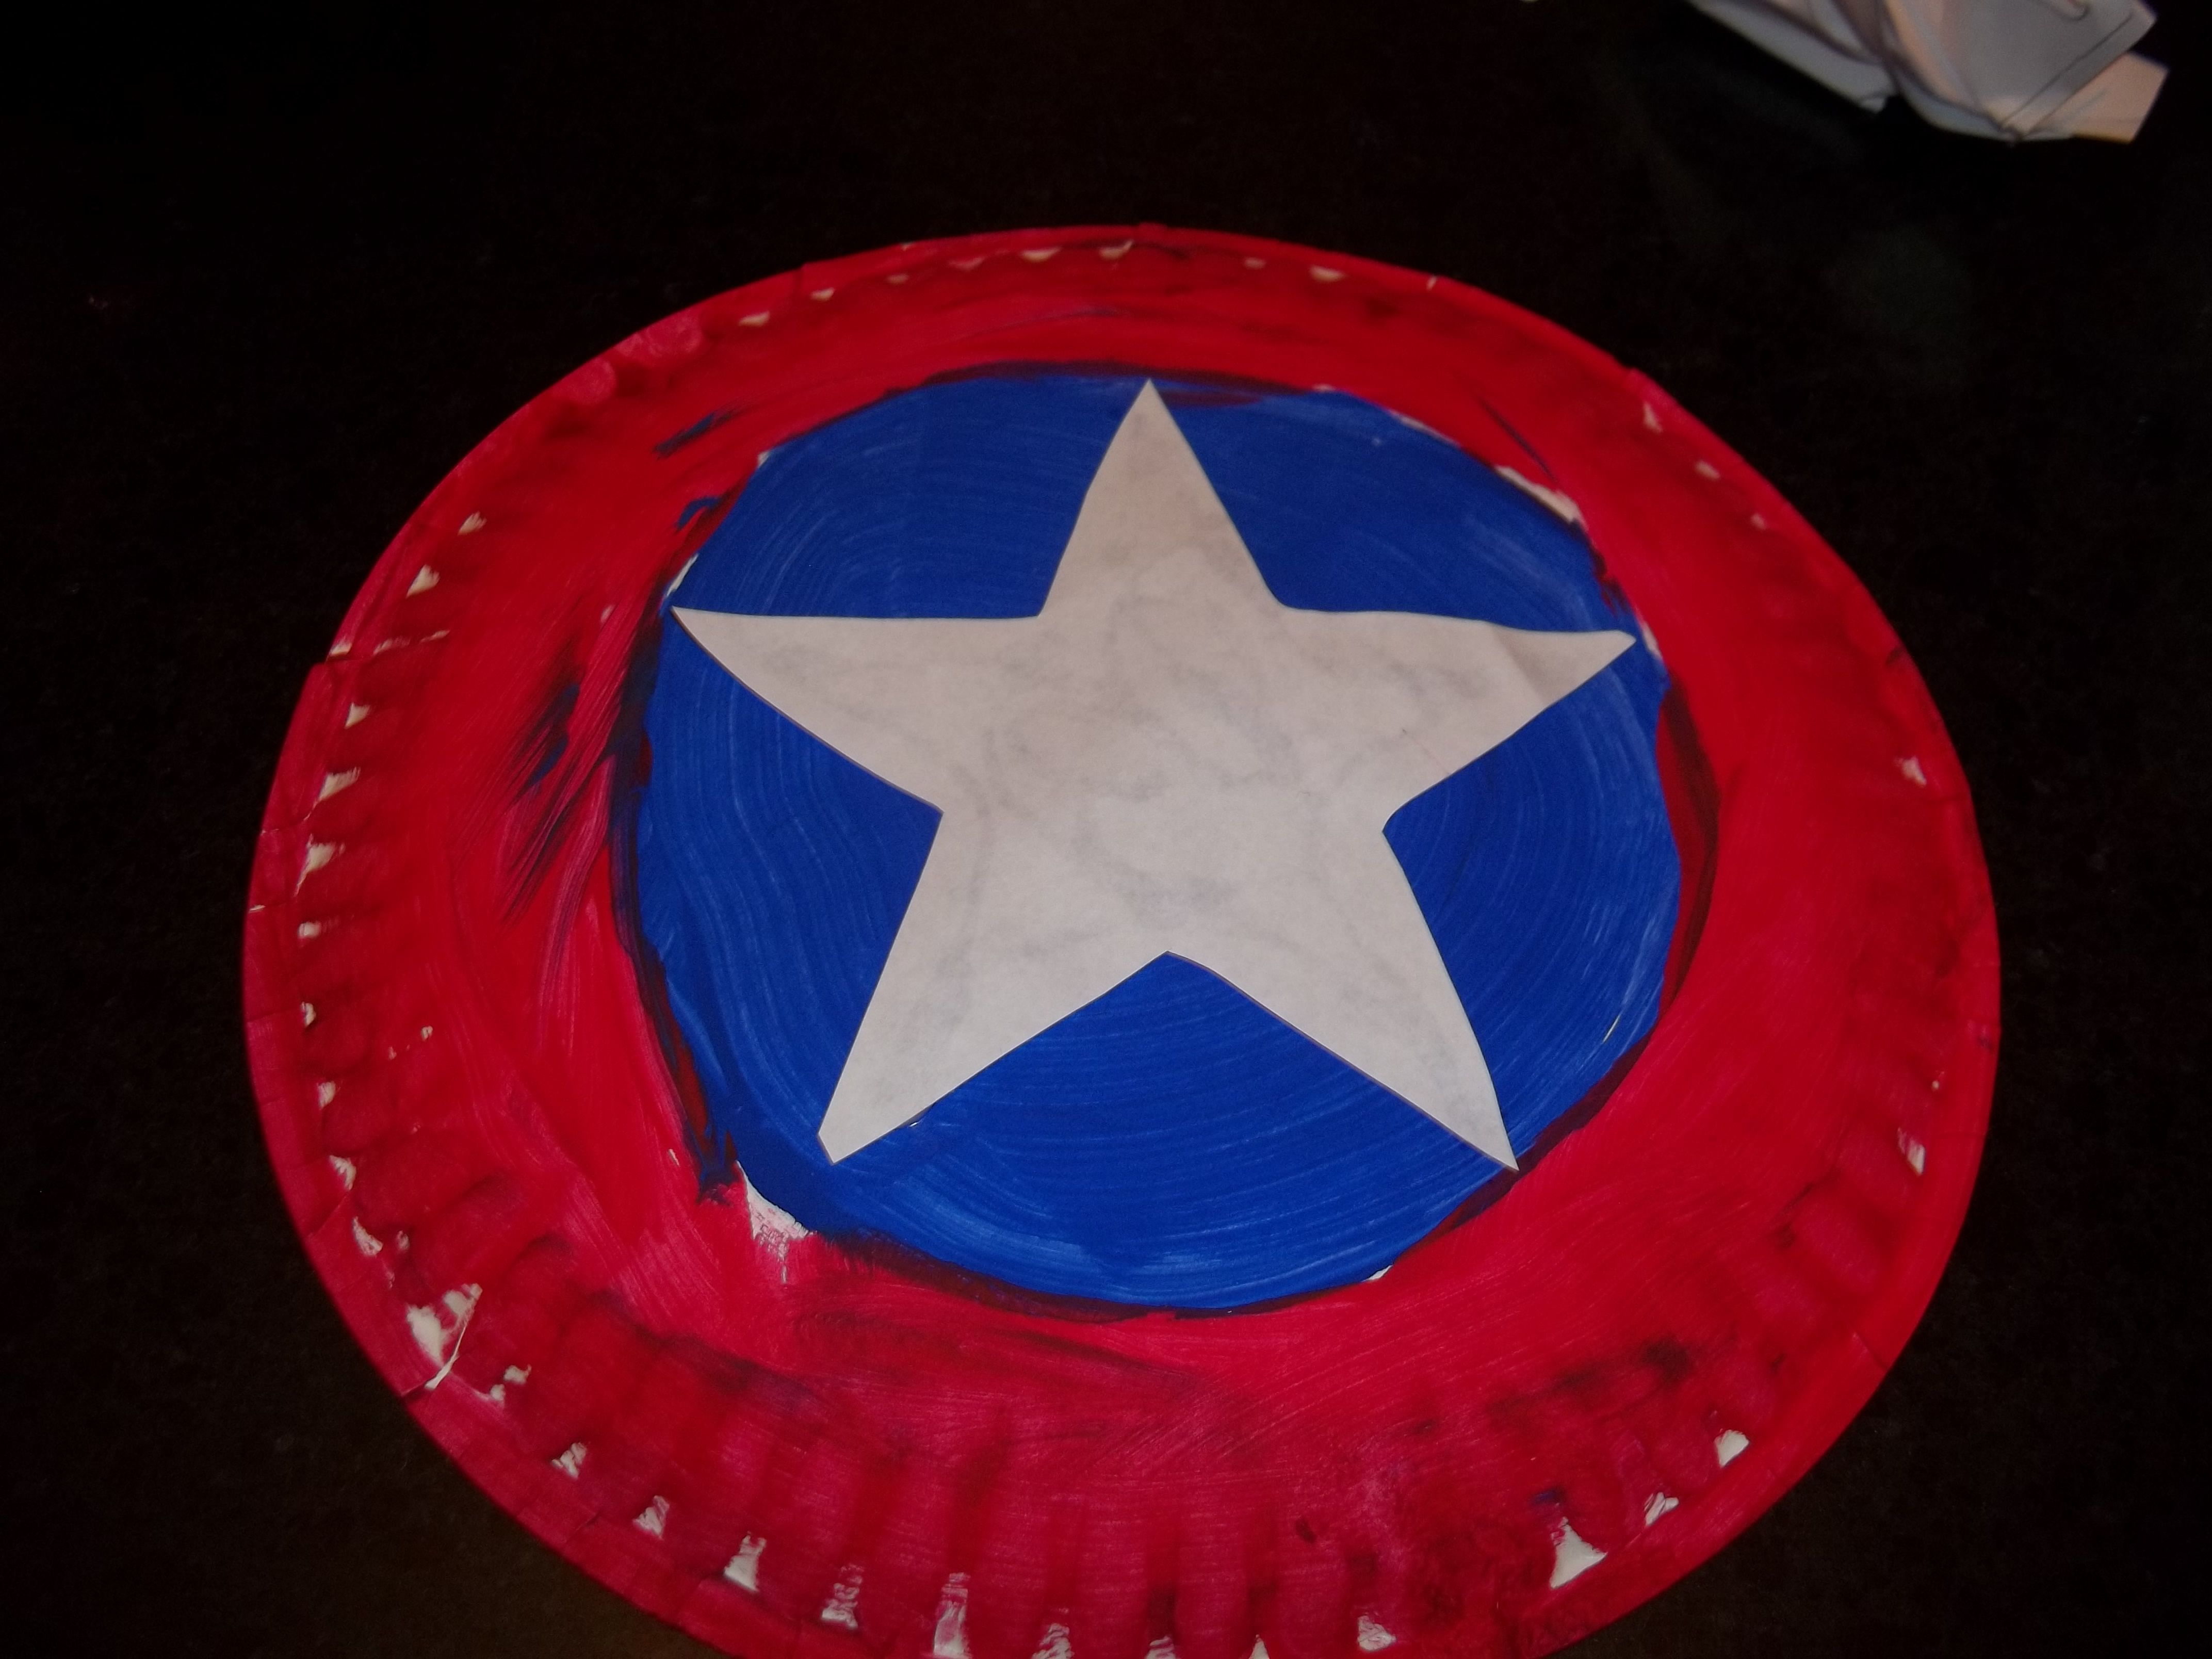 Captain america shield so easy all you need is a paper plate paint captain america shield so easy all you need is a paper plate paint cut out star and some duct tape on the back for handle boys had a ball with this toneelgroepblik Image collections